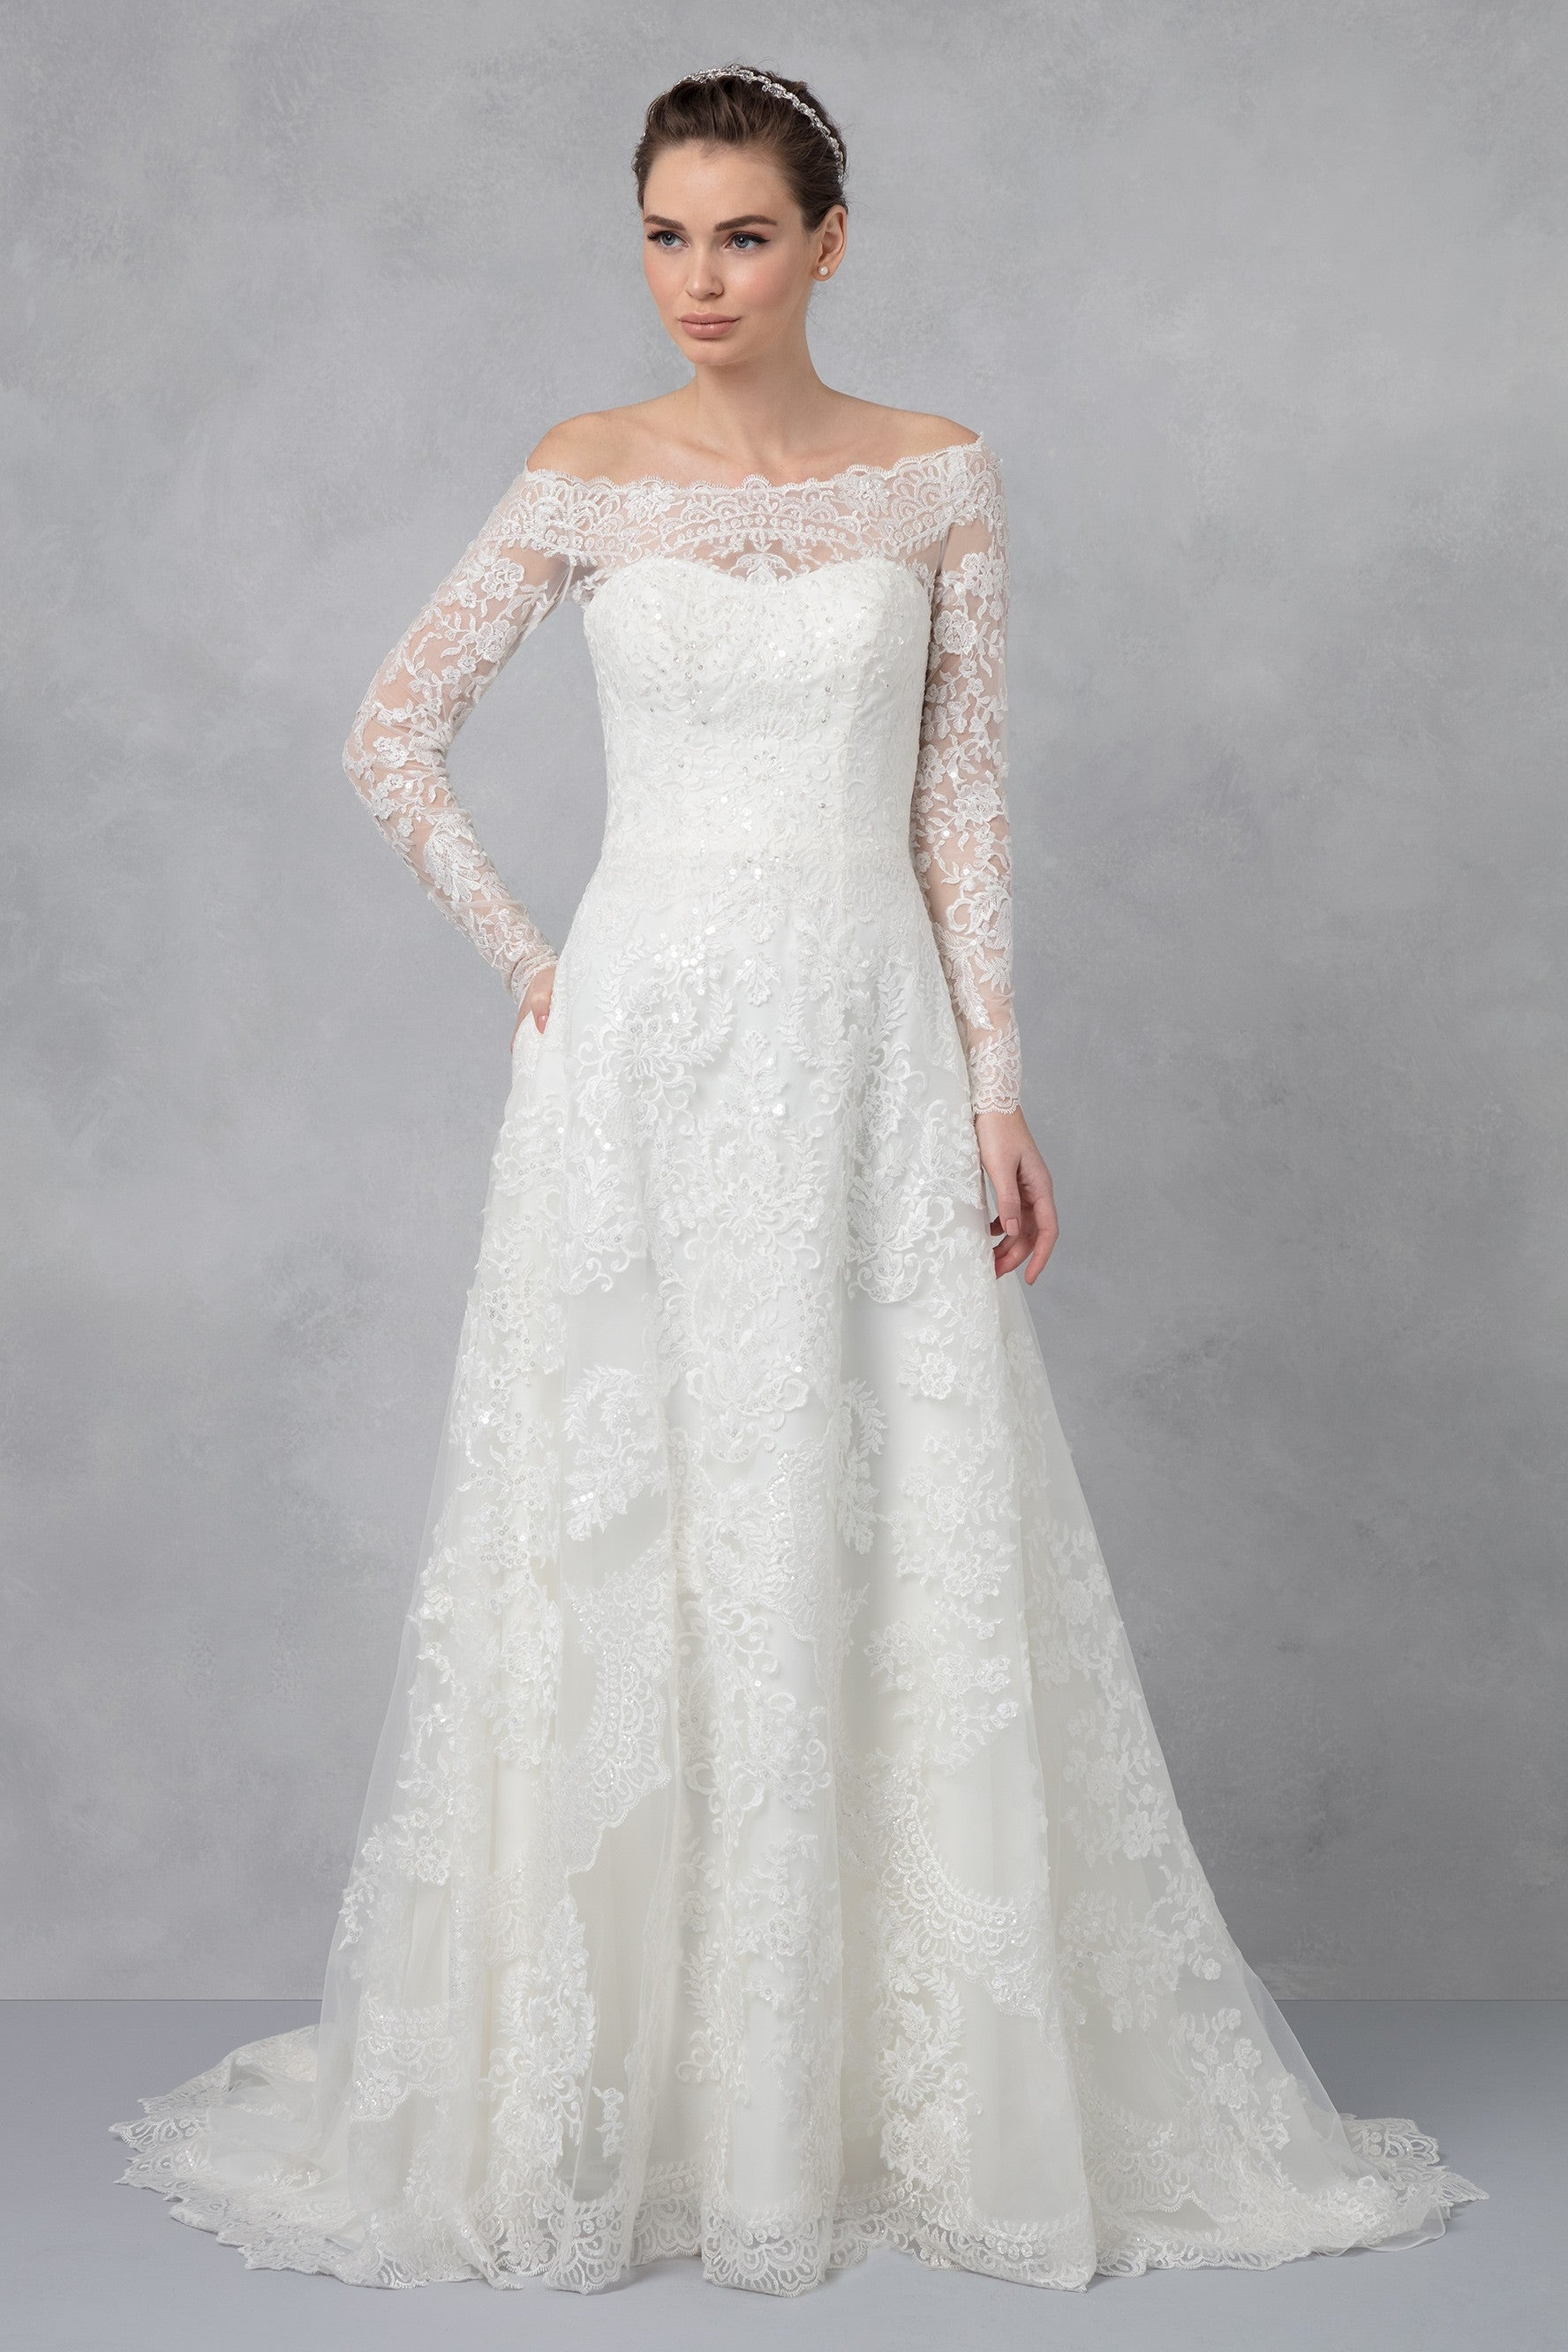 Petite off the shoulder lace a line wedding dress 7cwg765 for Petite dresses for wedding